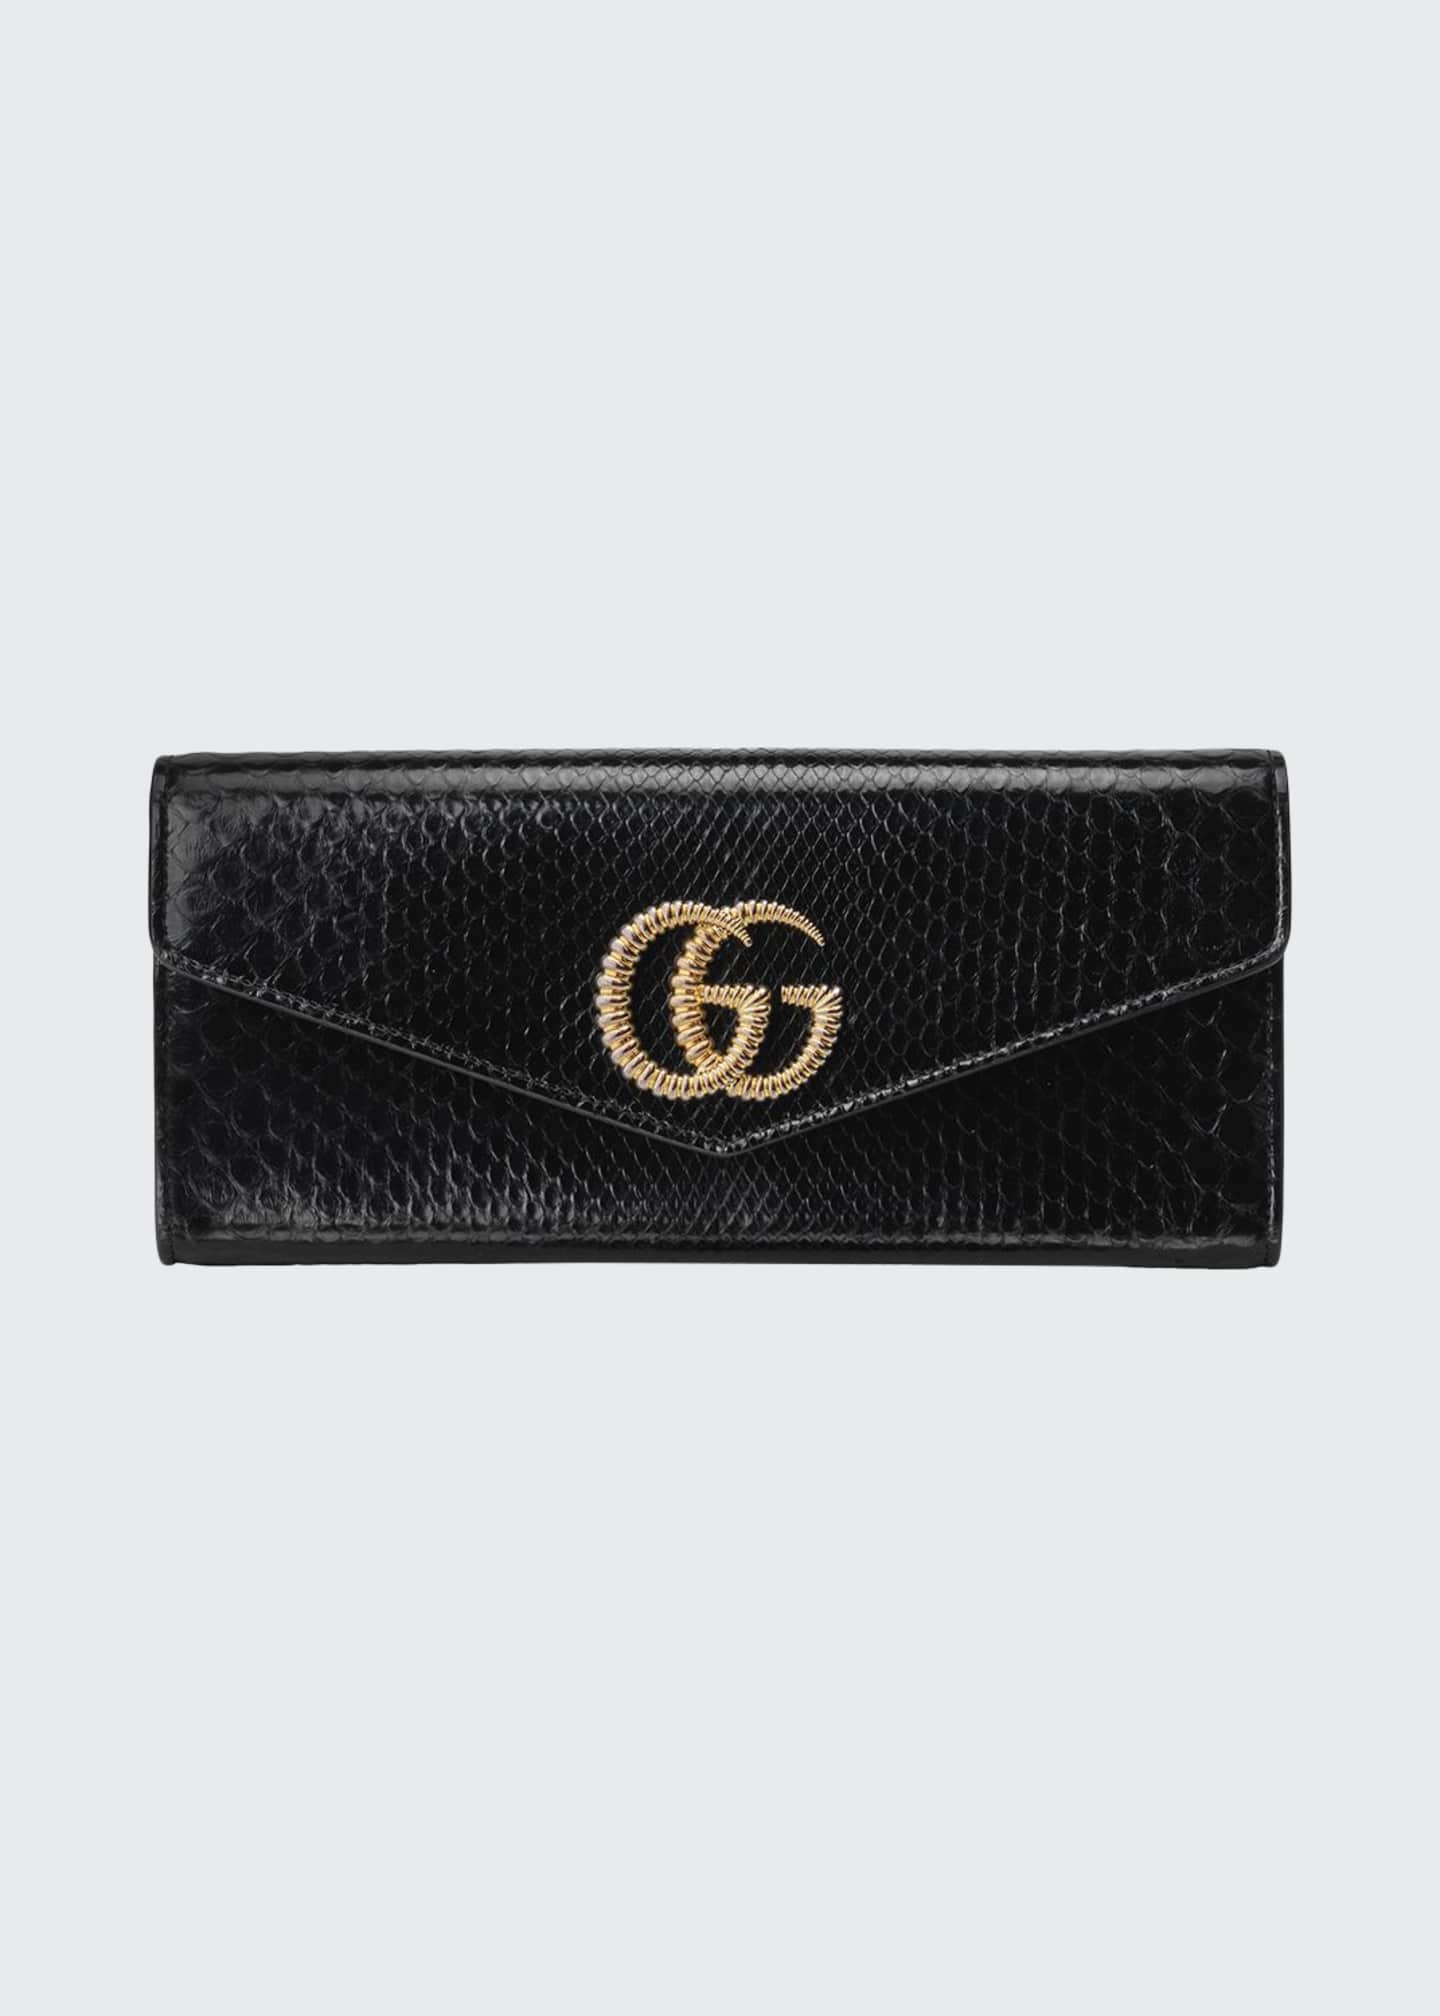 Gucci Broadway Python Evening Clutch Bag